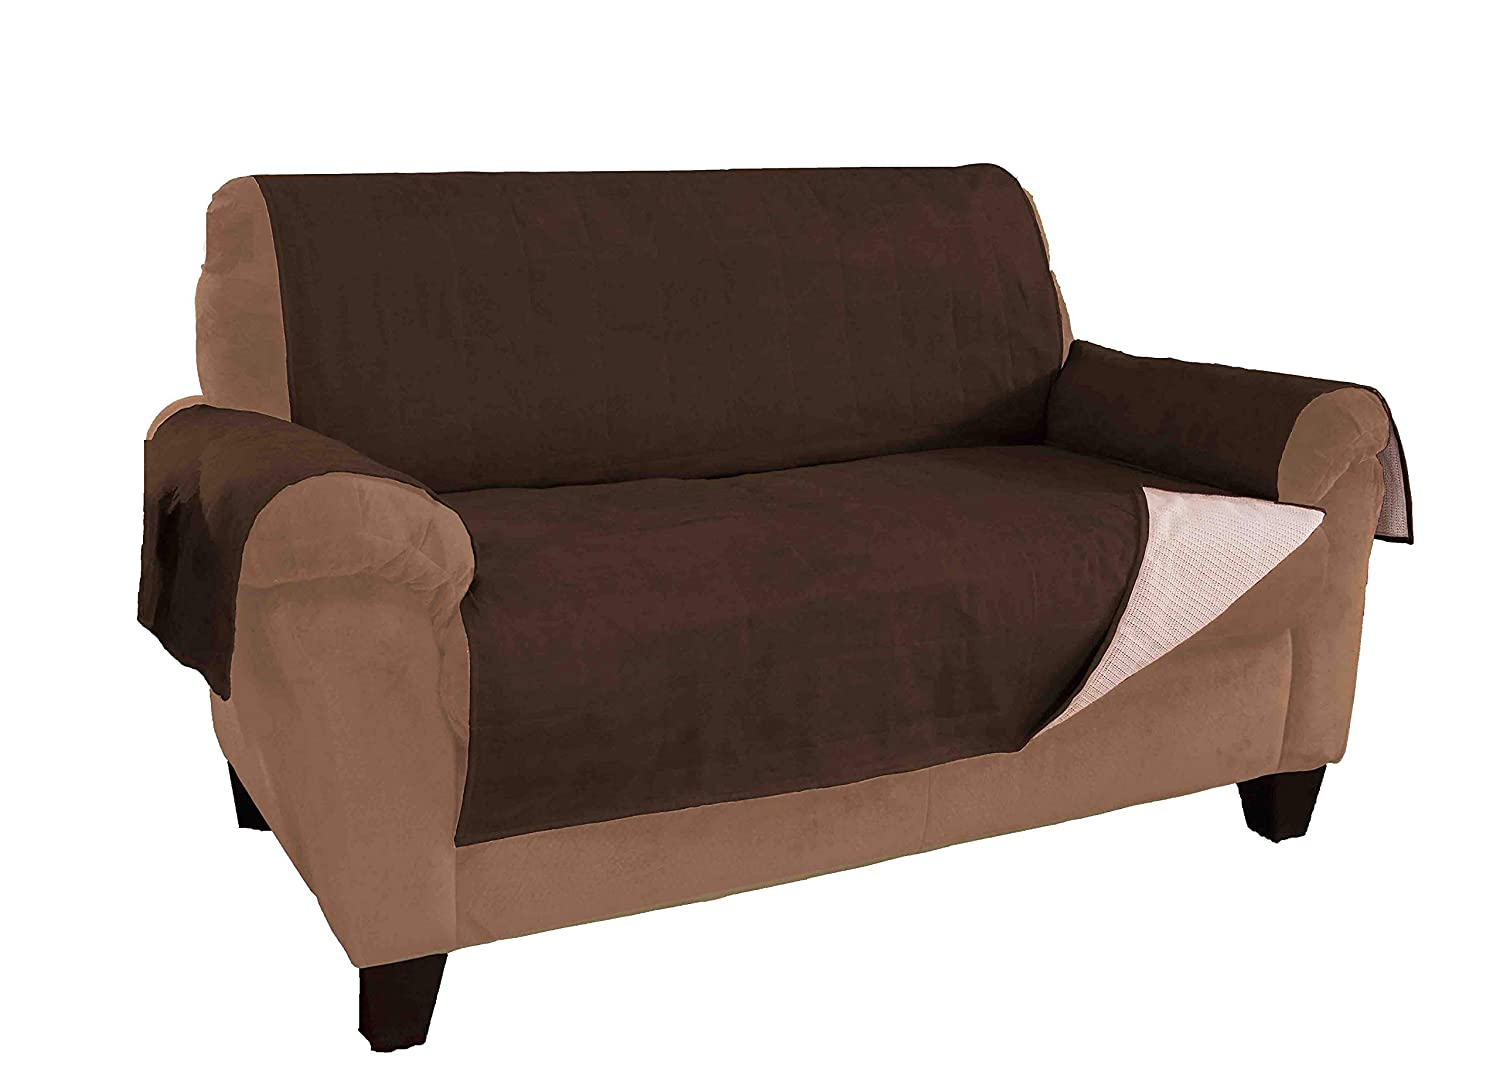 Link Shades and Improved Anti-Slip Grip Sofa and Couch Protector, Cover, Slipcover, with Stay Put Straps and Water Resistant Microsuede Fabric (Sofa, Chocolate)